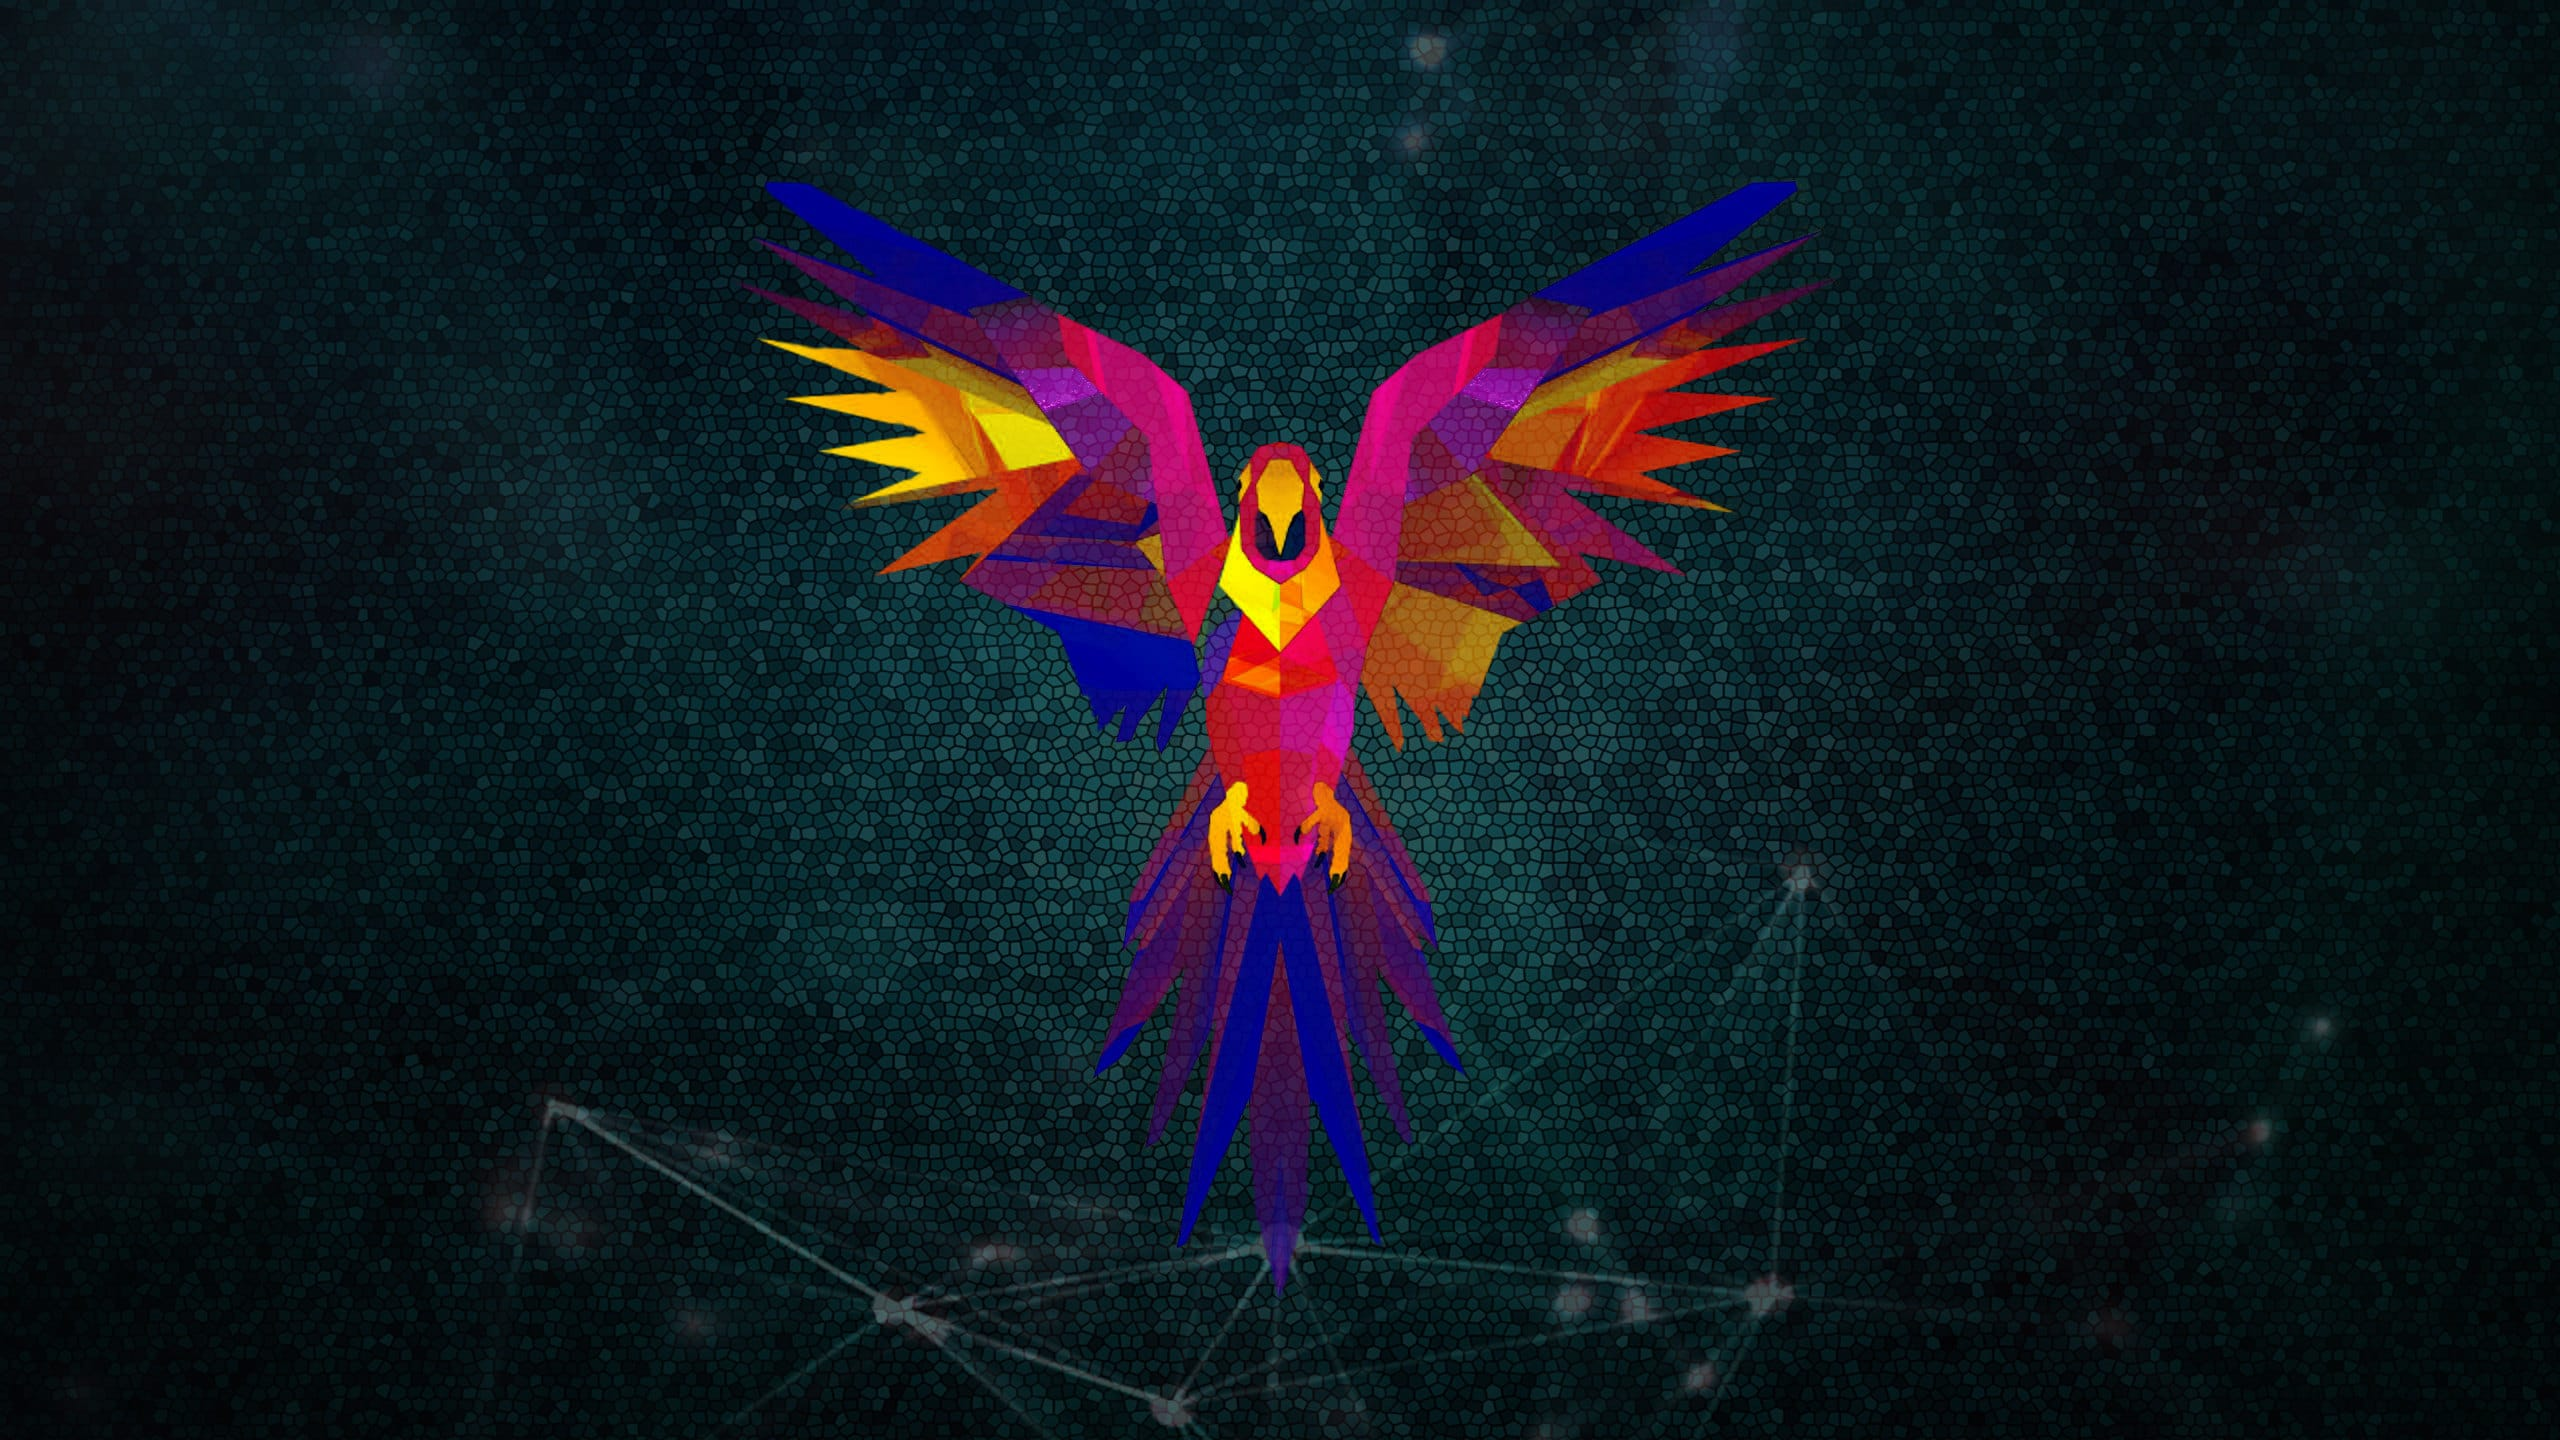 parrot images free download